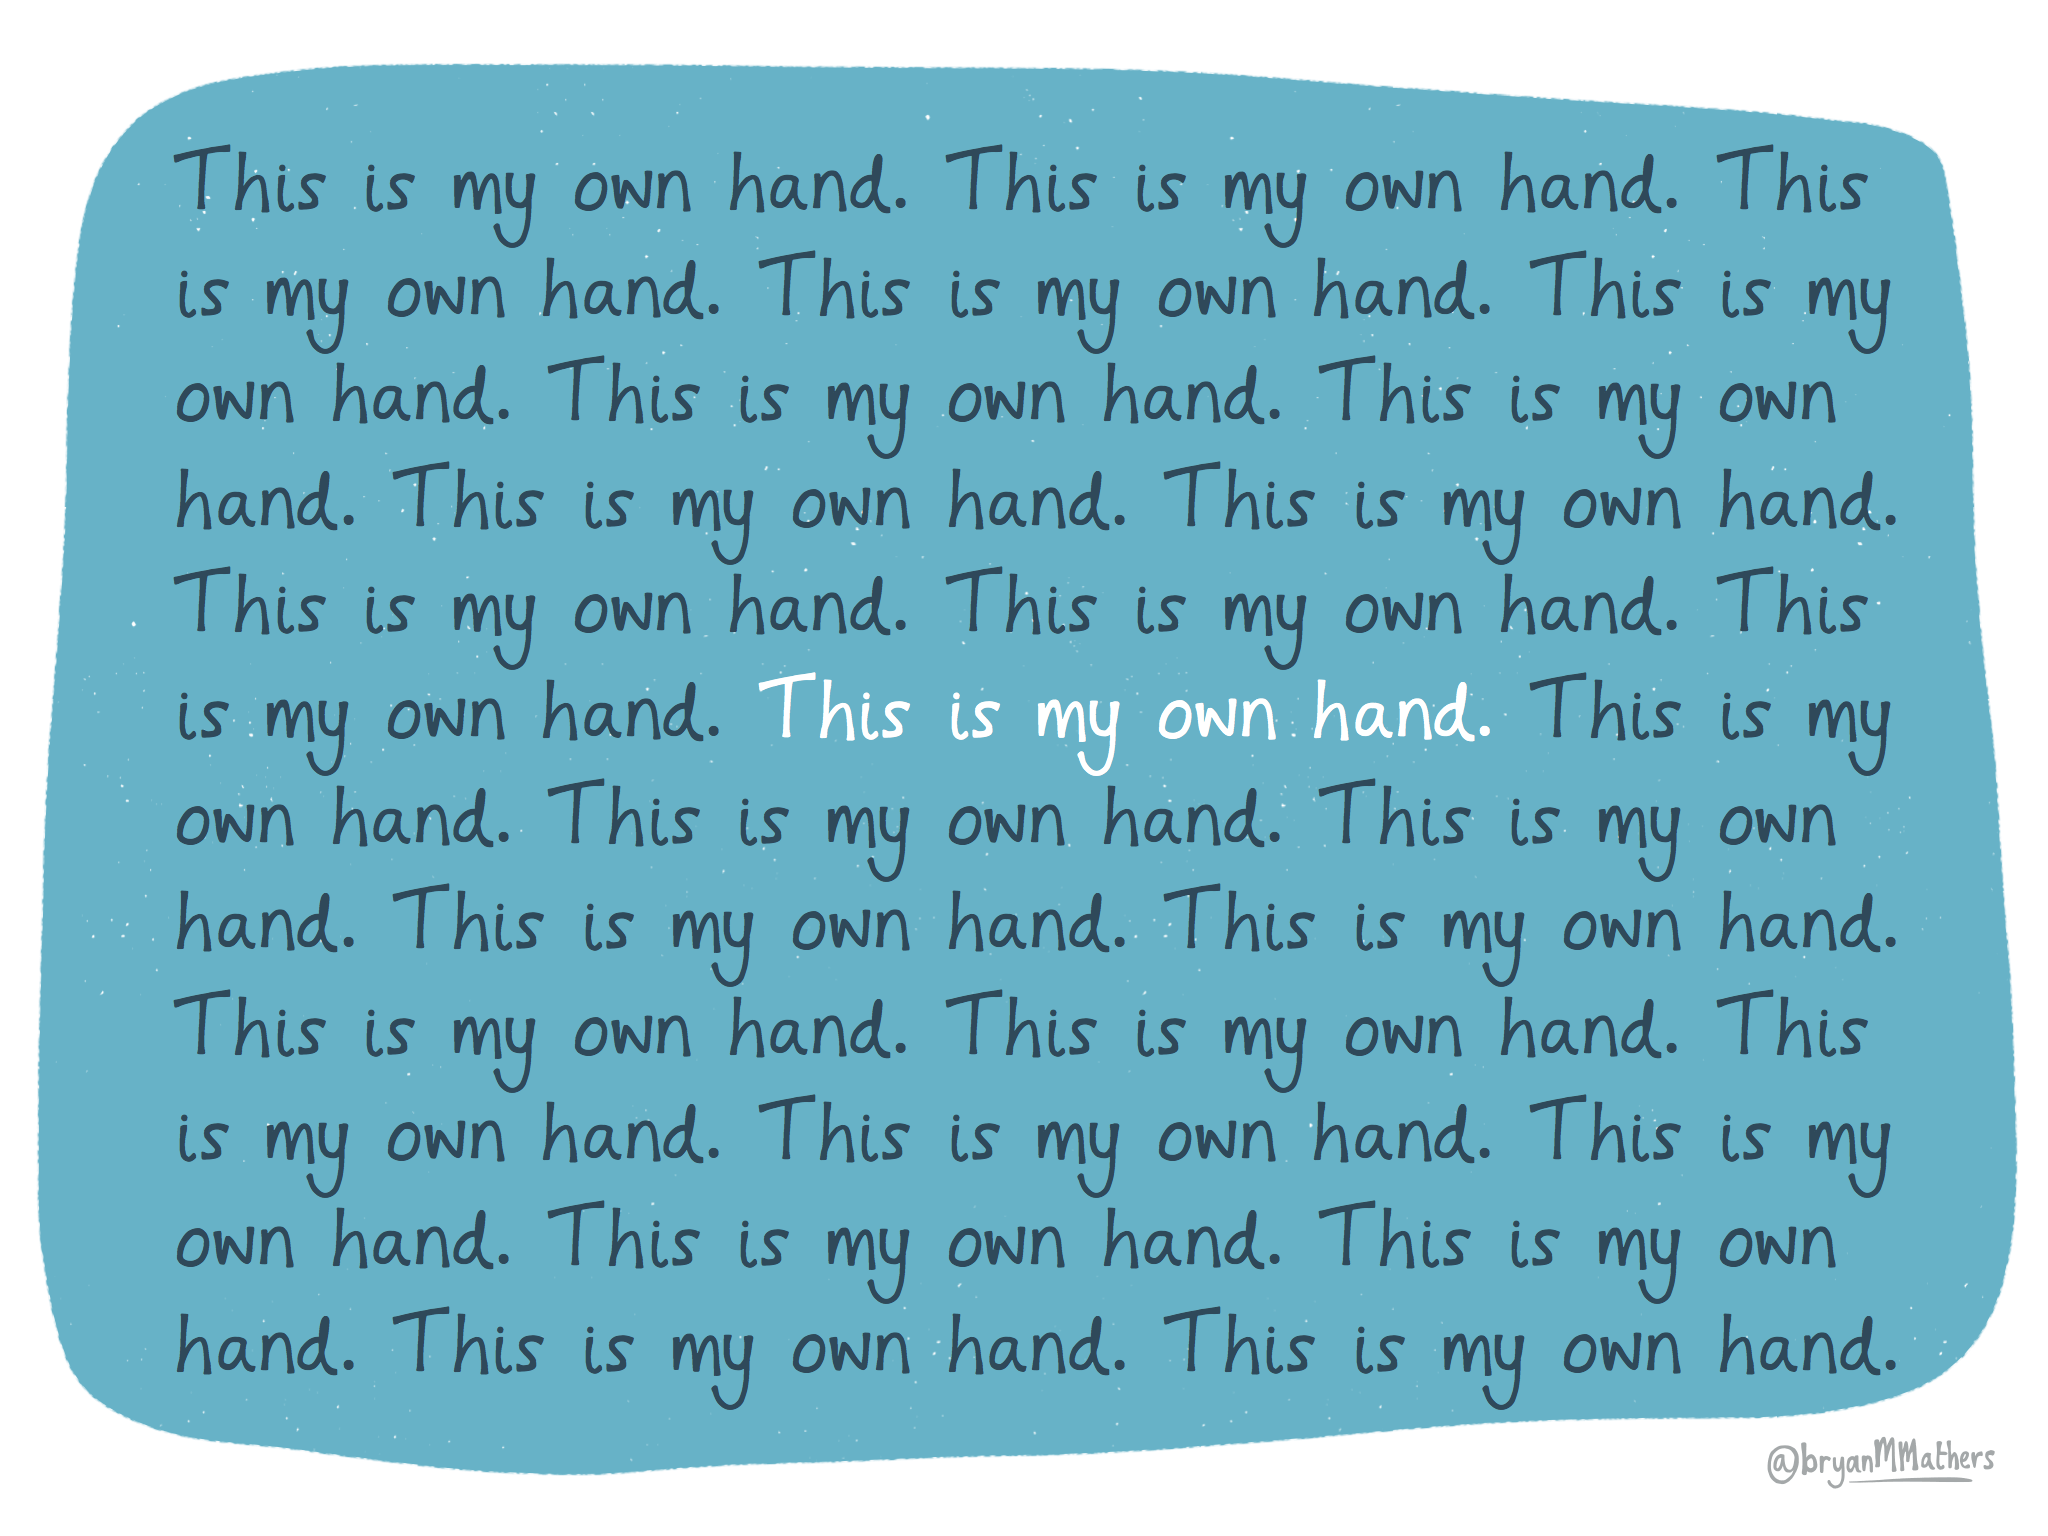 This is my own hand